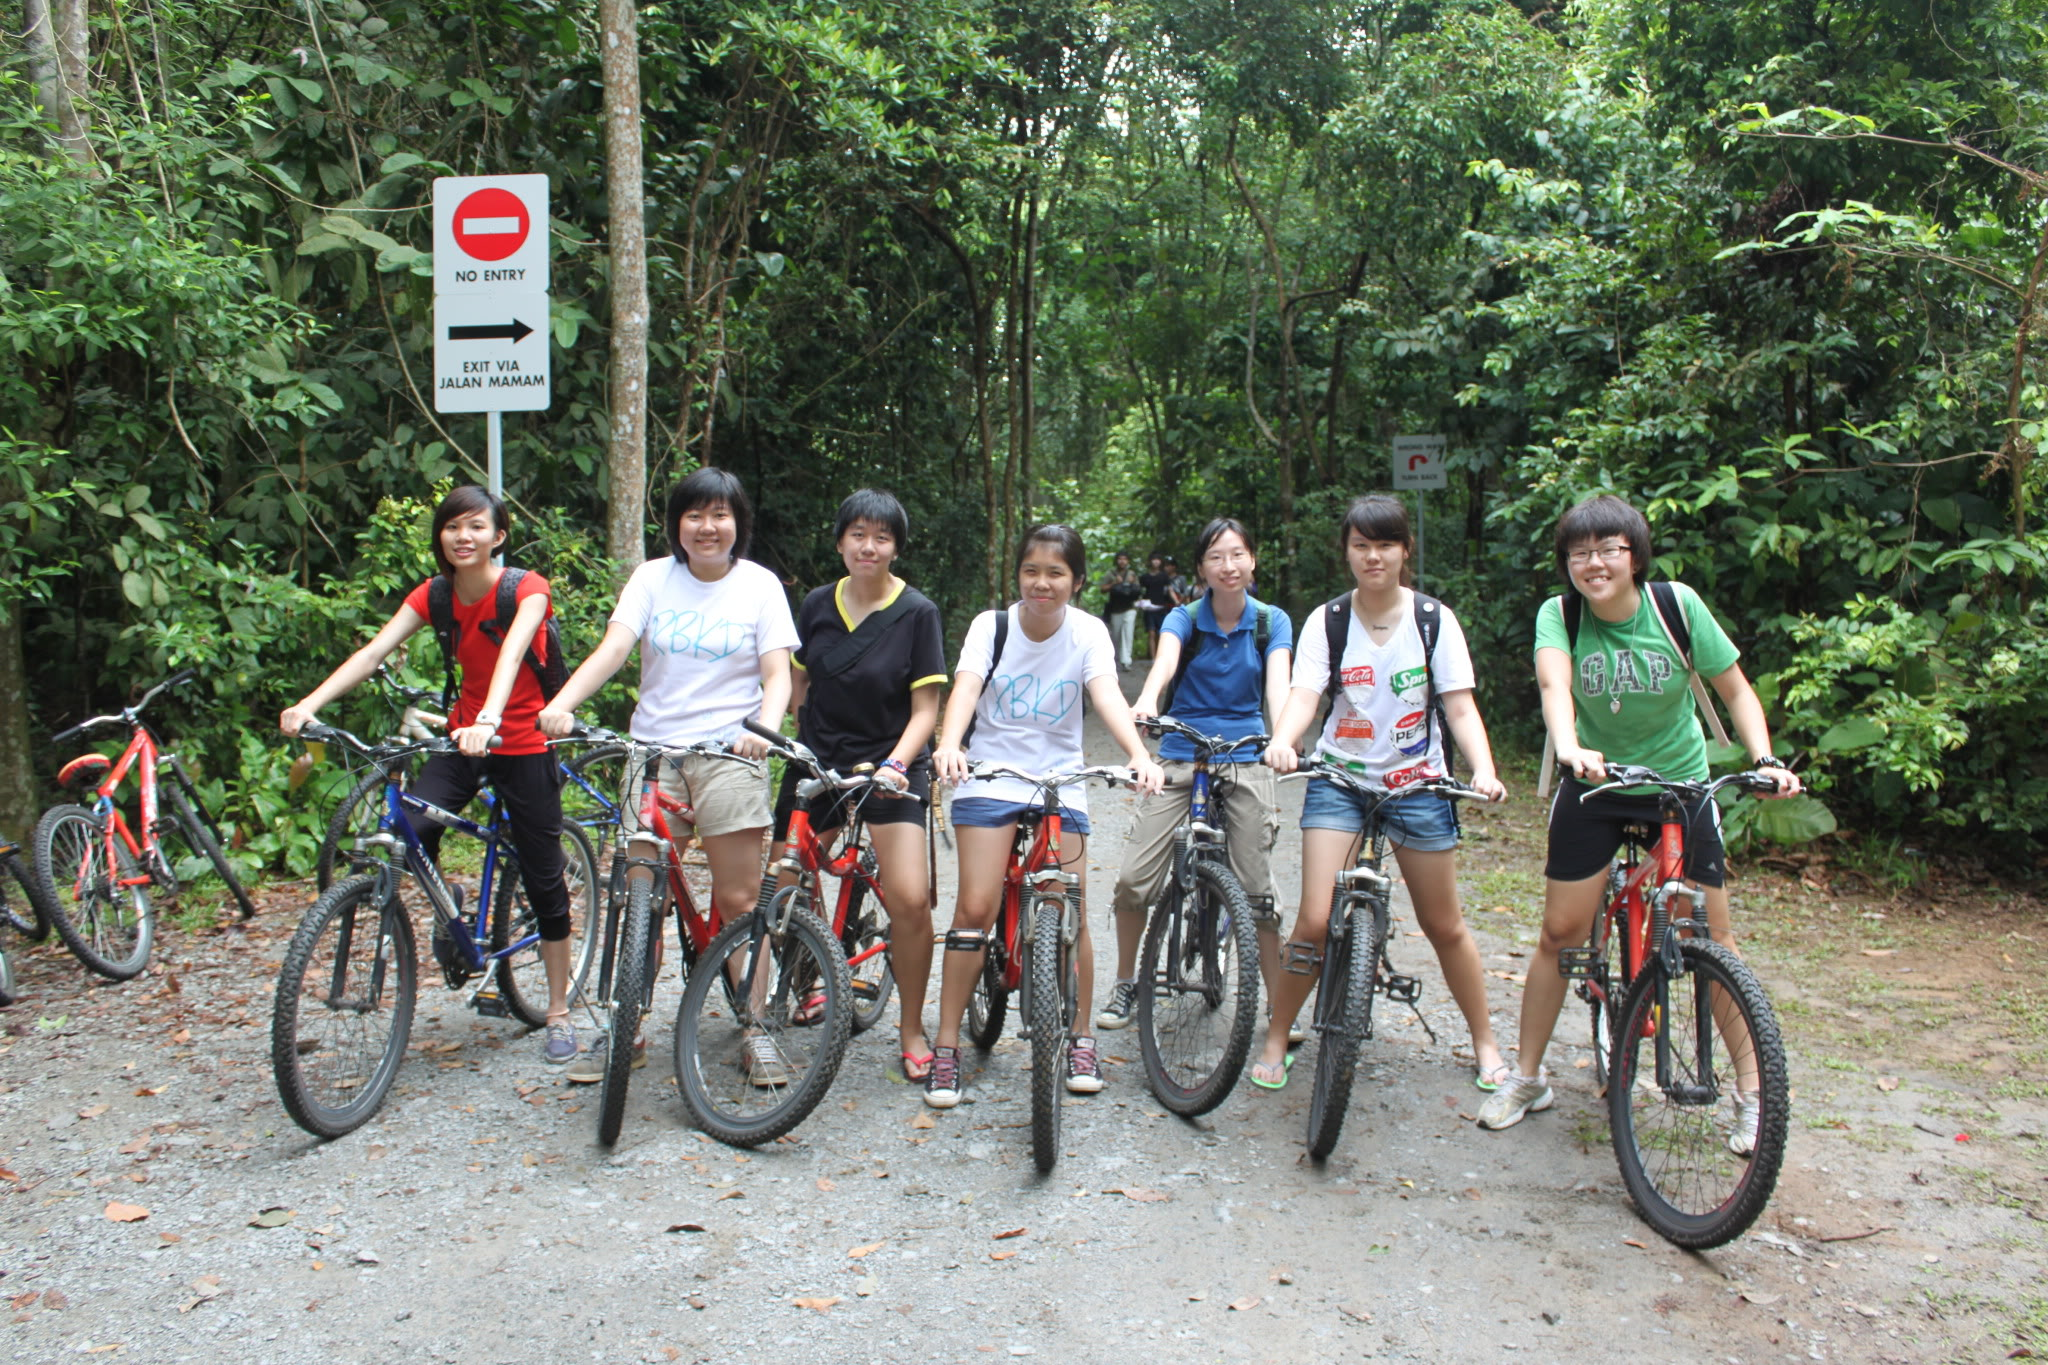 bonding session over cycling in Pulau Ubin